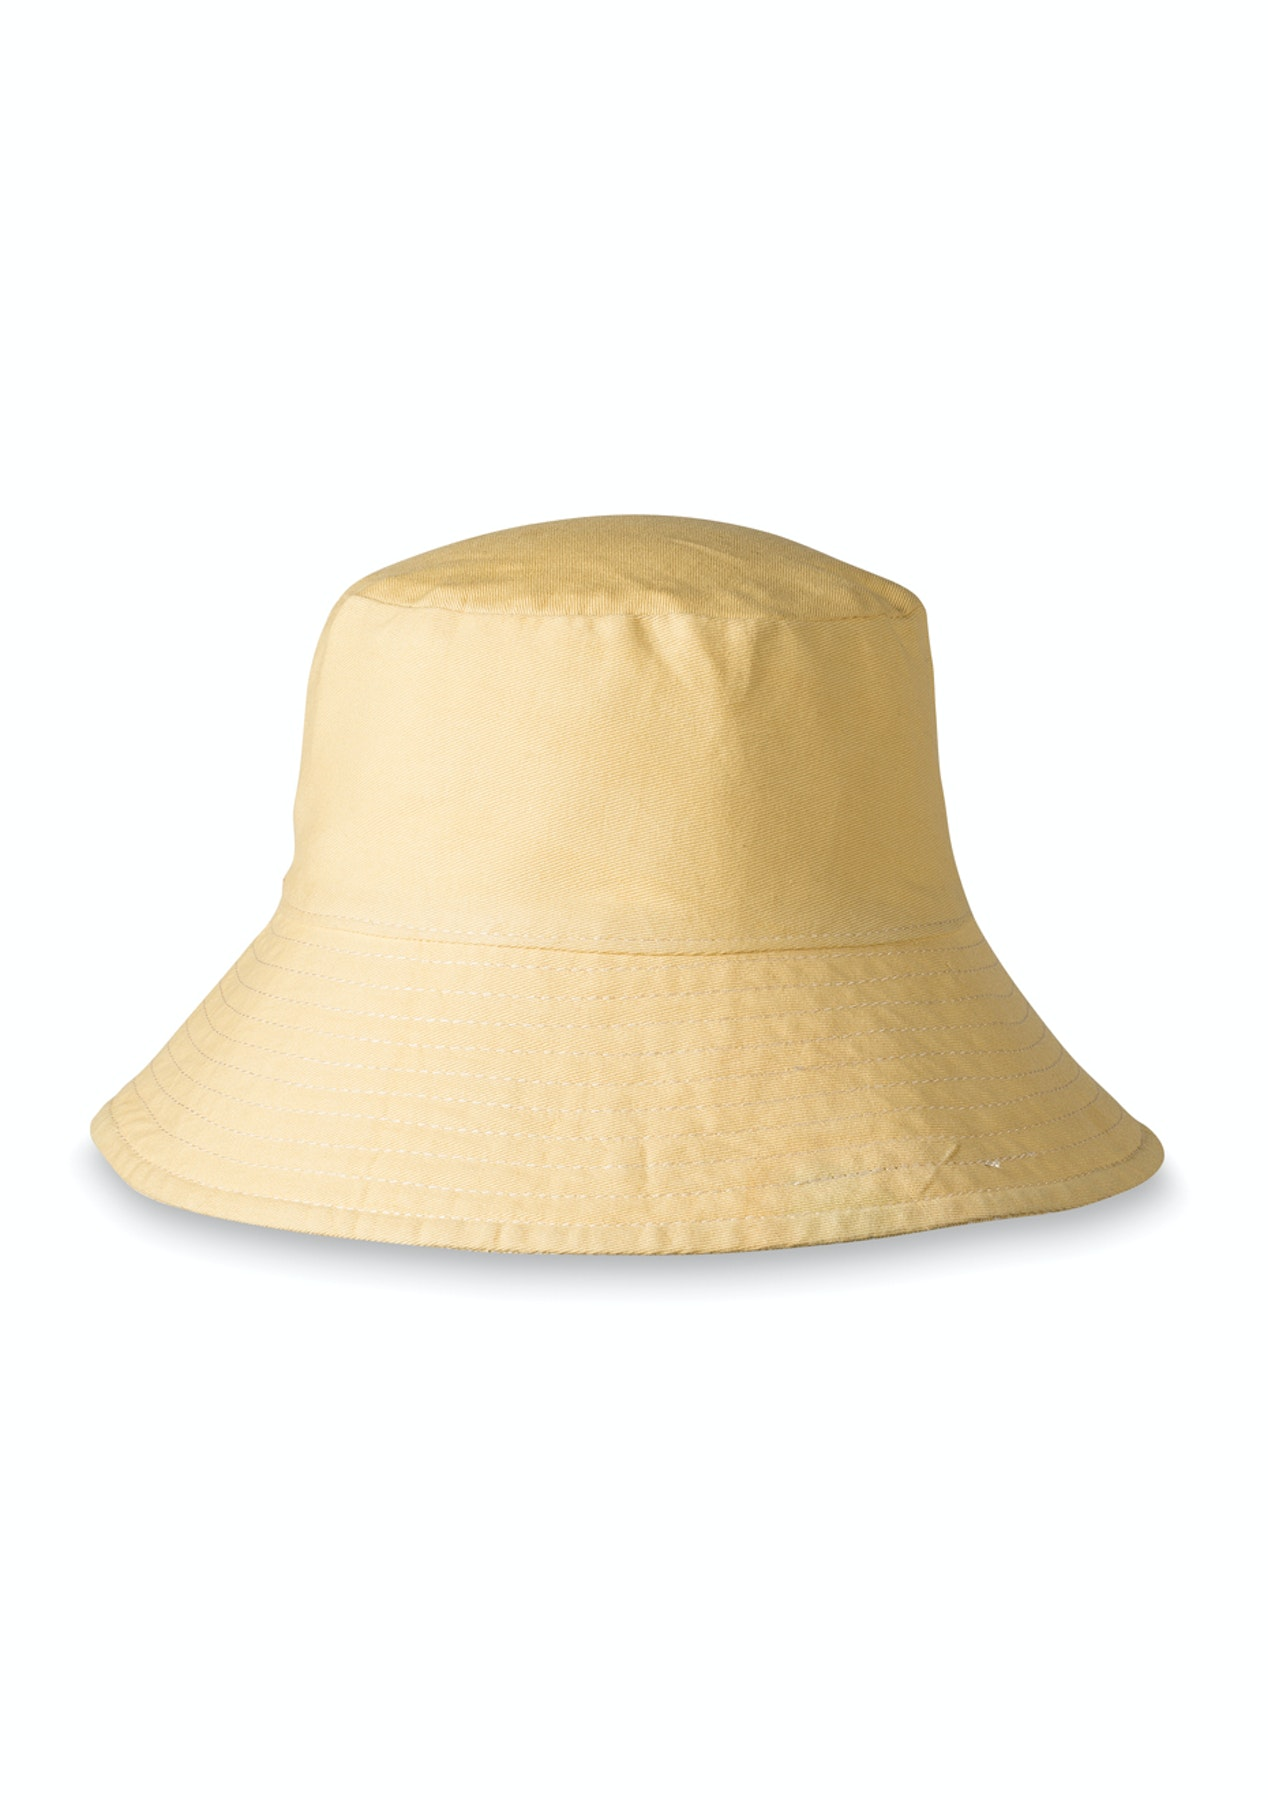 Citta Design - Reed Reversible Sun Hat Light Sweetcorn S M 55-58cmdia -  Massive Home Outlet - Onceit 078ab630f4c